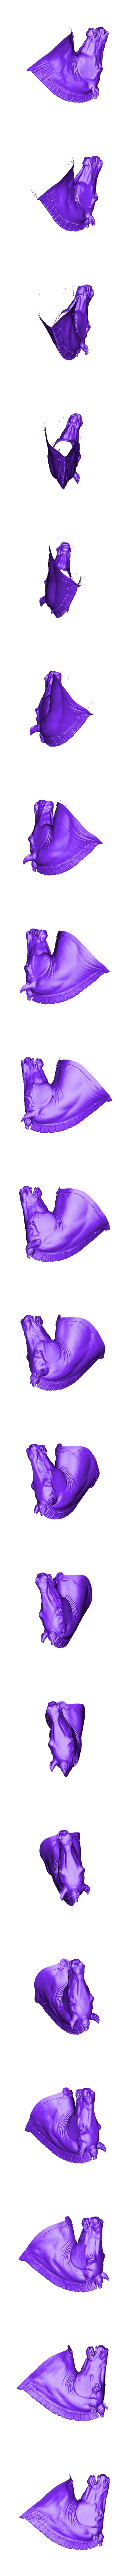 "Horse_Head.obj Download free OBJ file Horse Head (""Medici Riccardi"" horse) • 3D printer design, ThreeDScans"